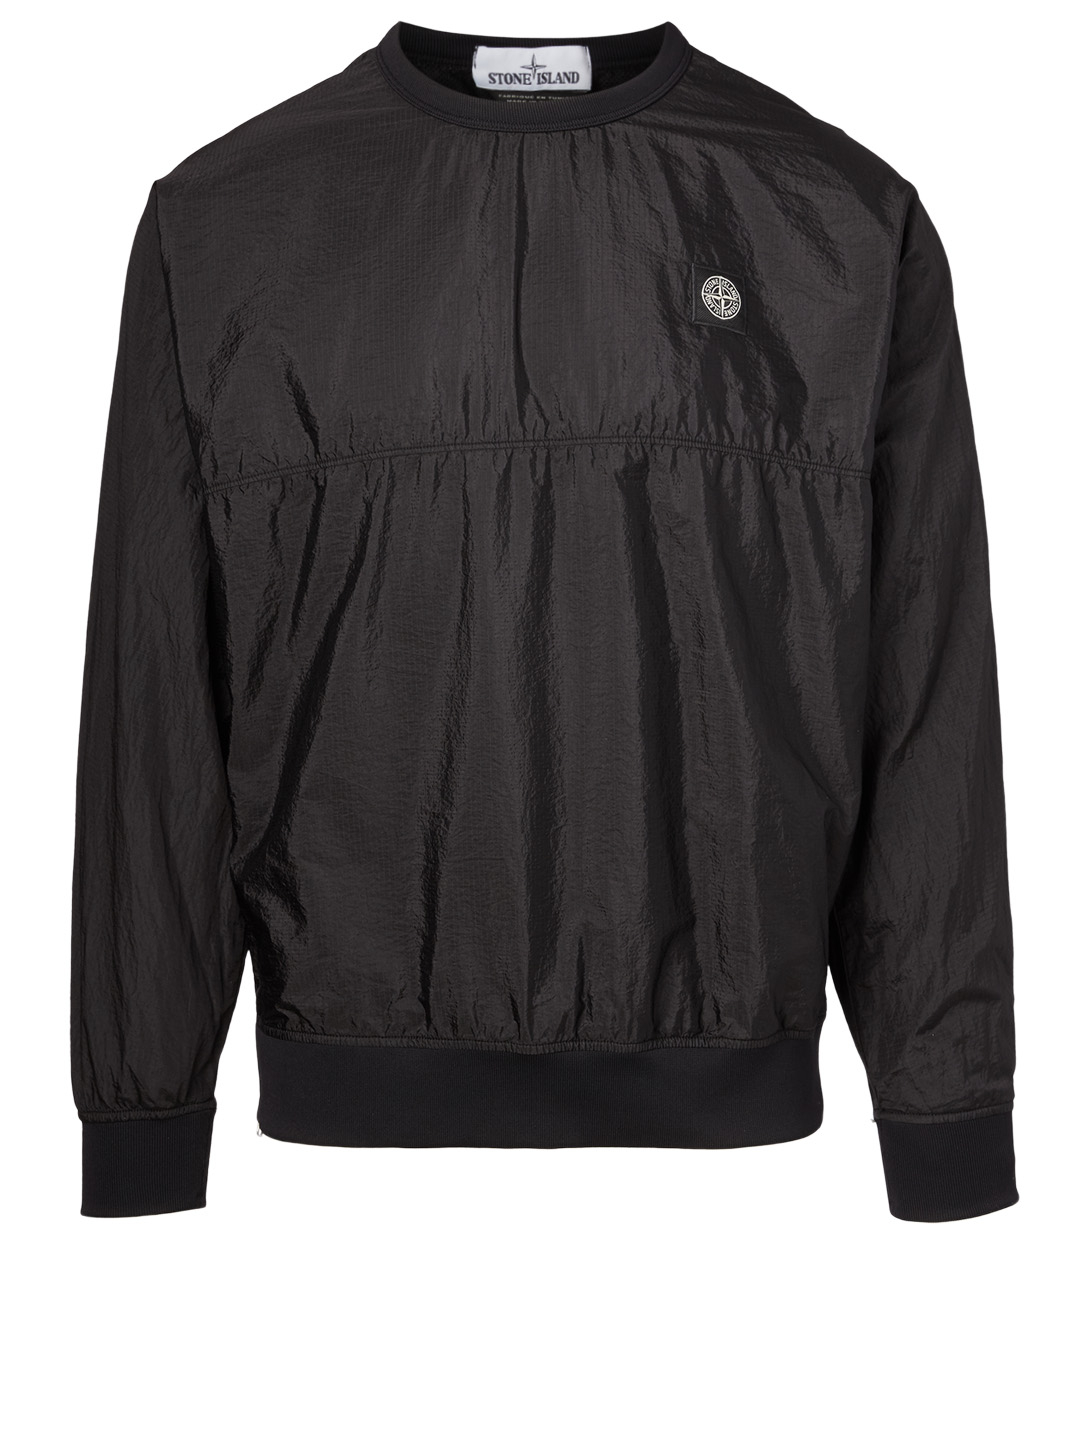 STONE ISLAND Nylon Track Sweatshirt Men's Black